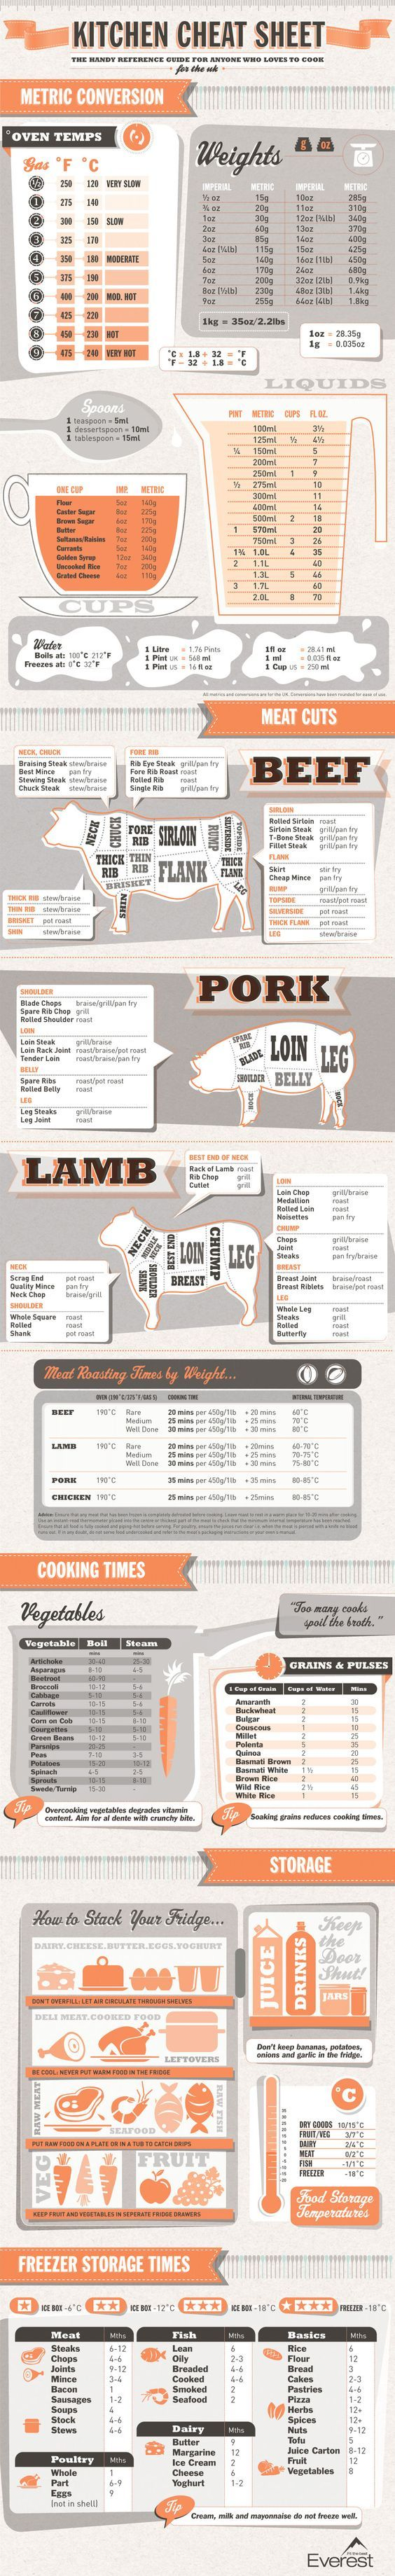 Fresh on IGM > Kitchen Cheat Sheet: Learn how to cook or do it even better! A handy reference guide for cooking lovers just to be on the safe side. Extra food storage tips at the bottom. > http://infographicsmania.com/kitchen-cheat-sheet/